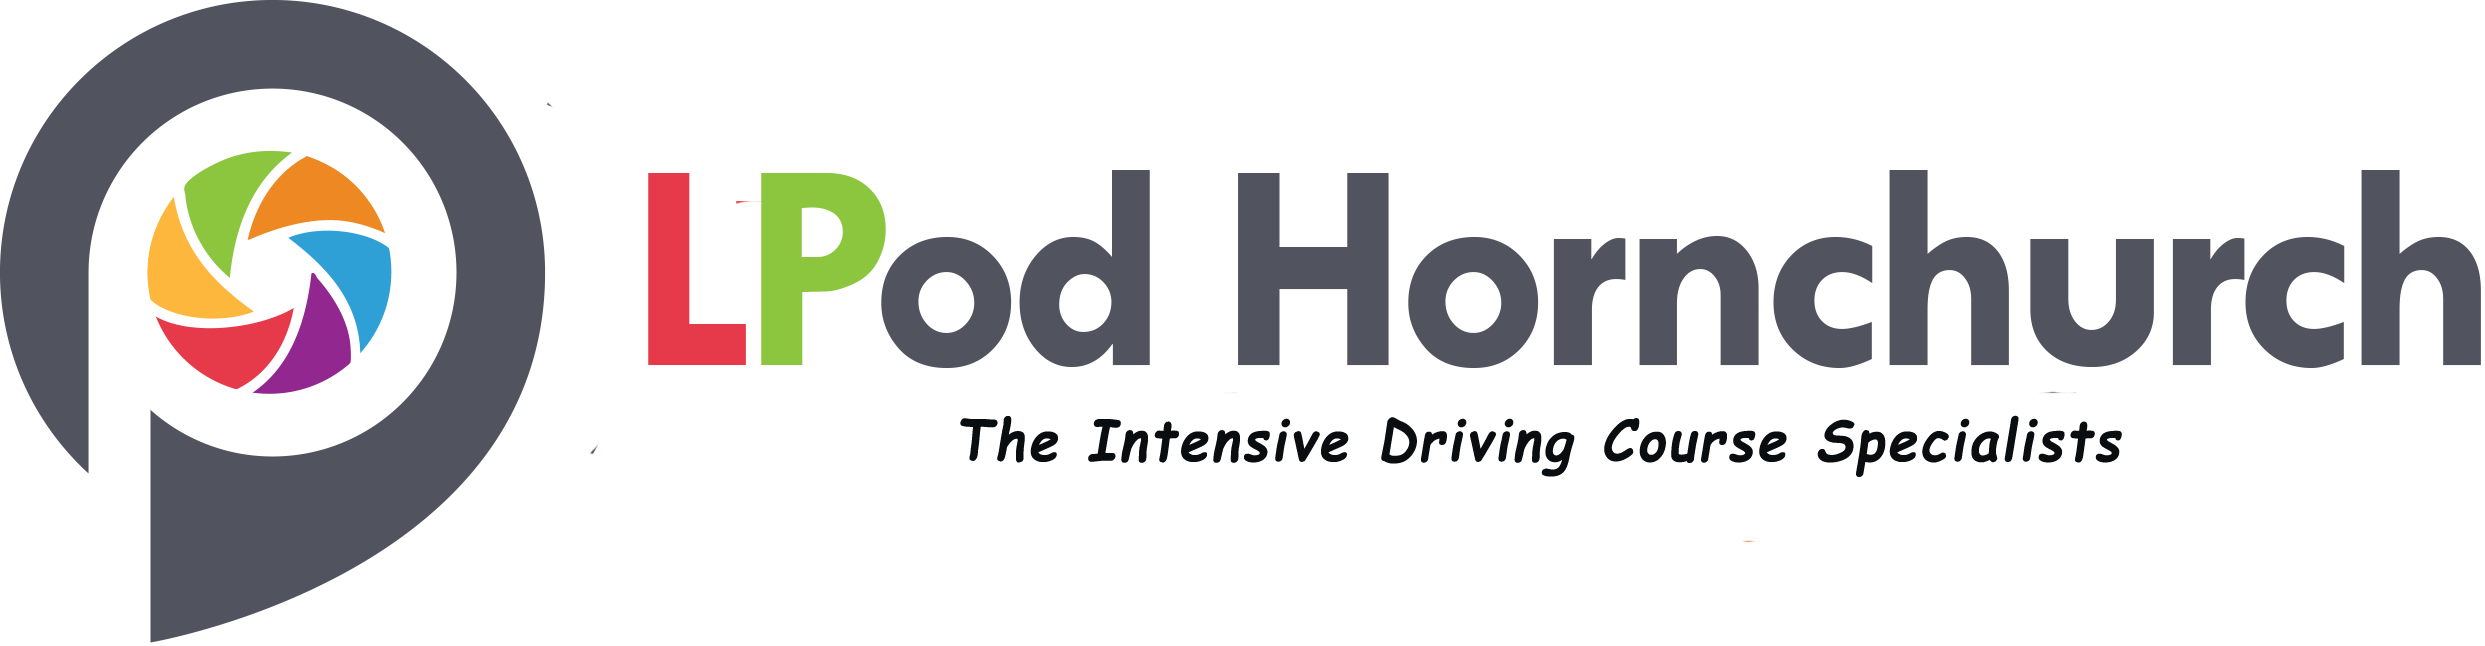 intensive driving courses hornchurch, one week driving courses hornchurch, fast oass driving courses hornchurch